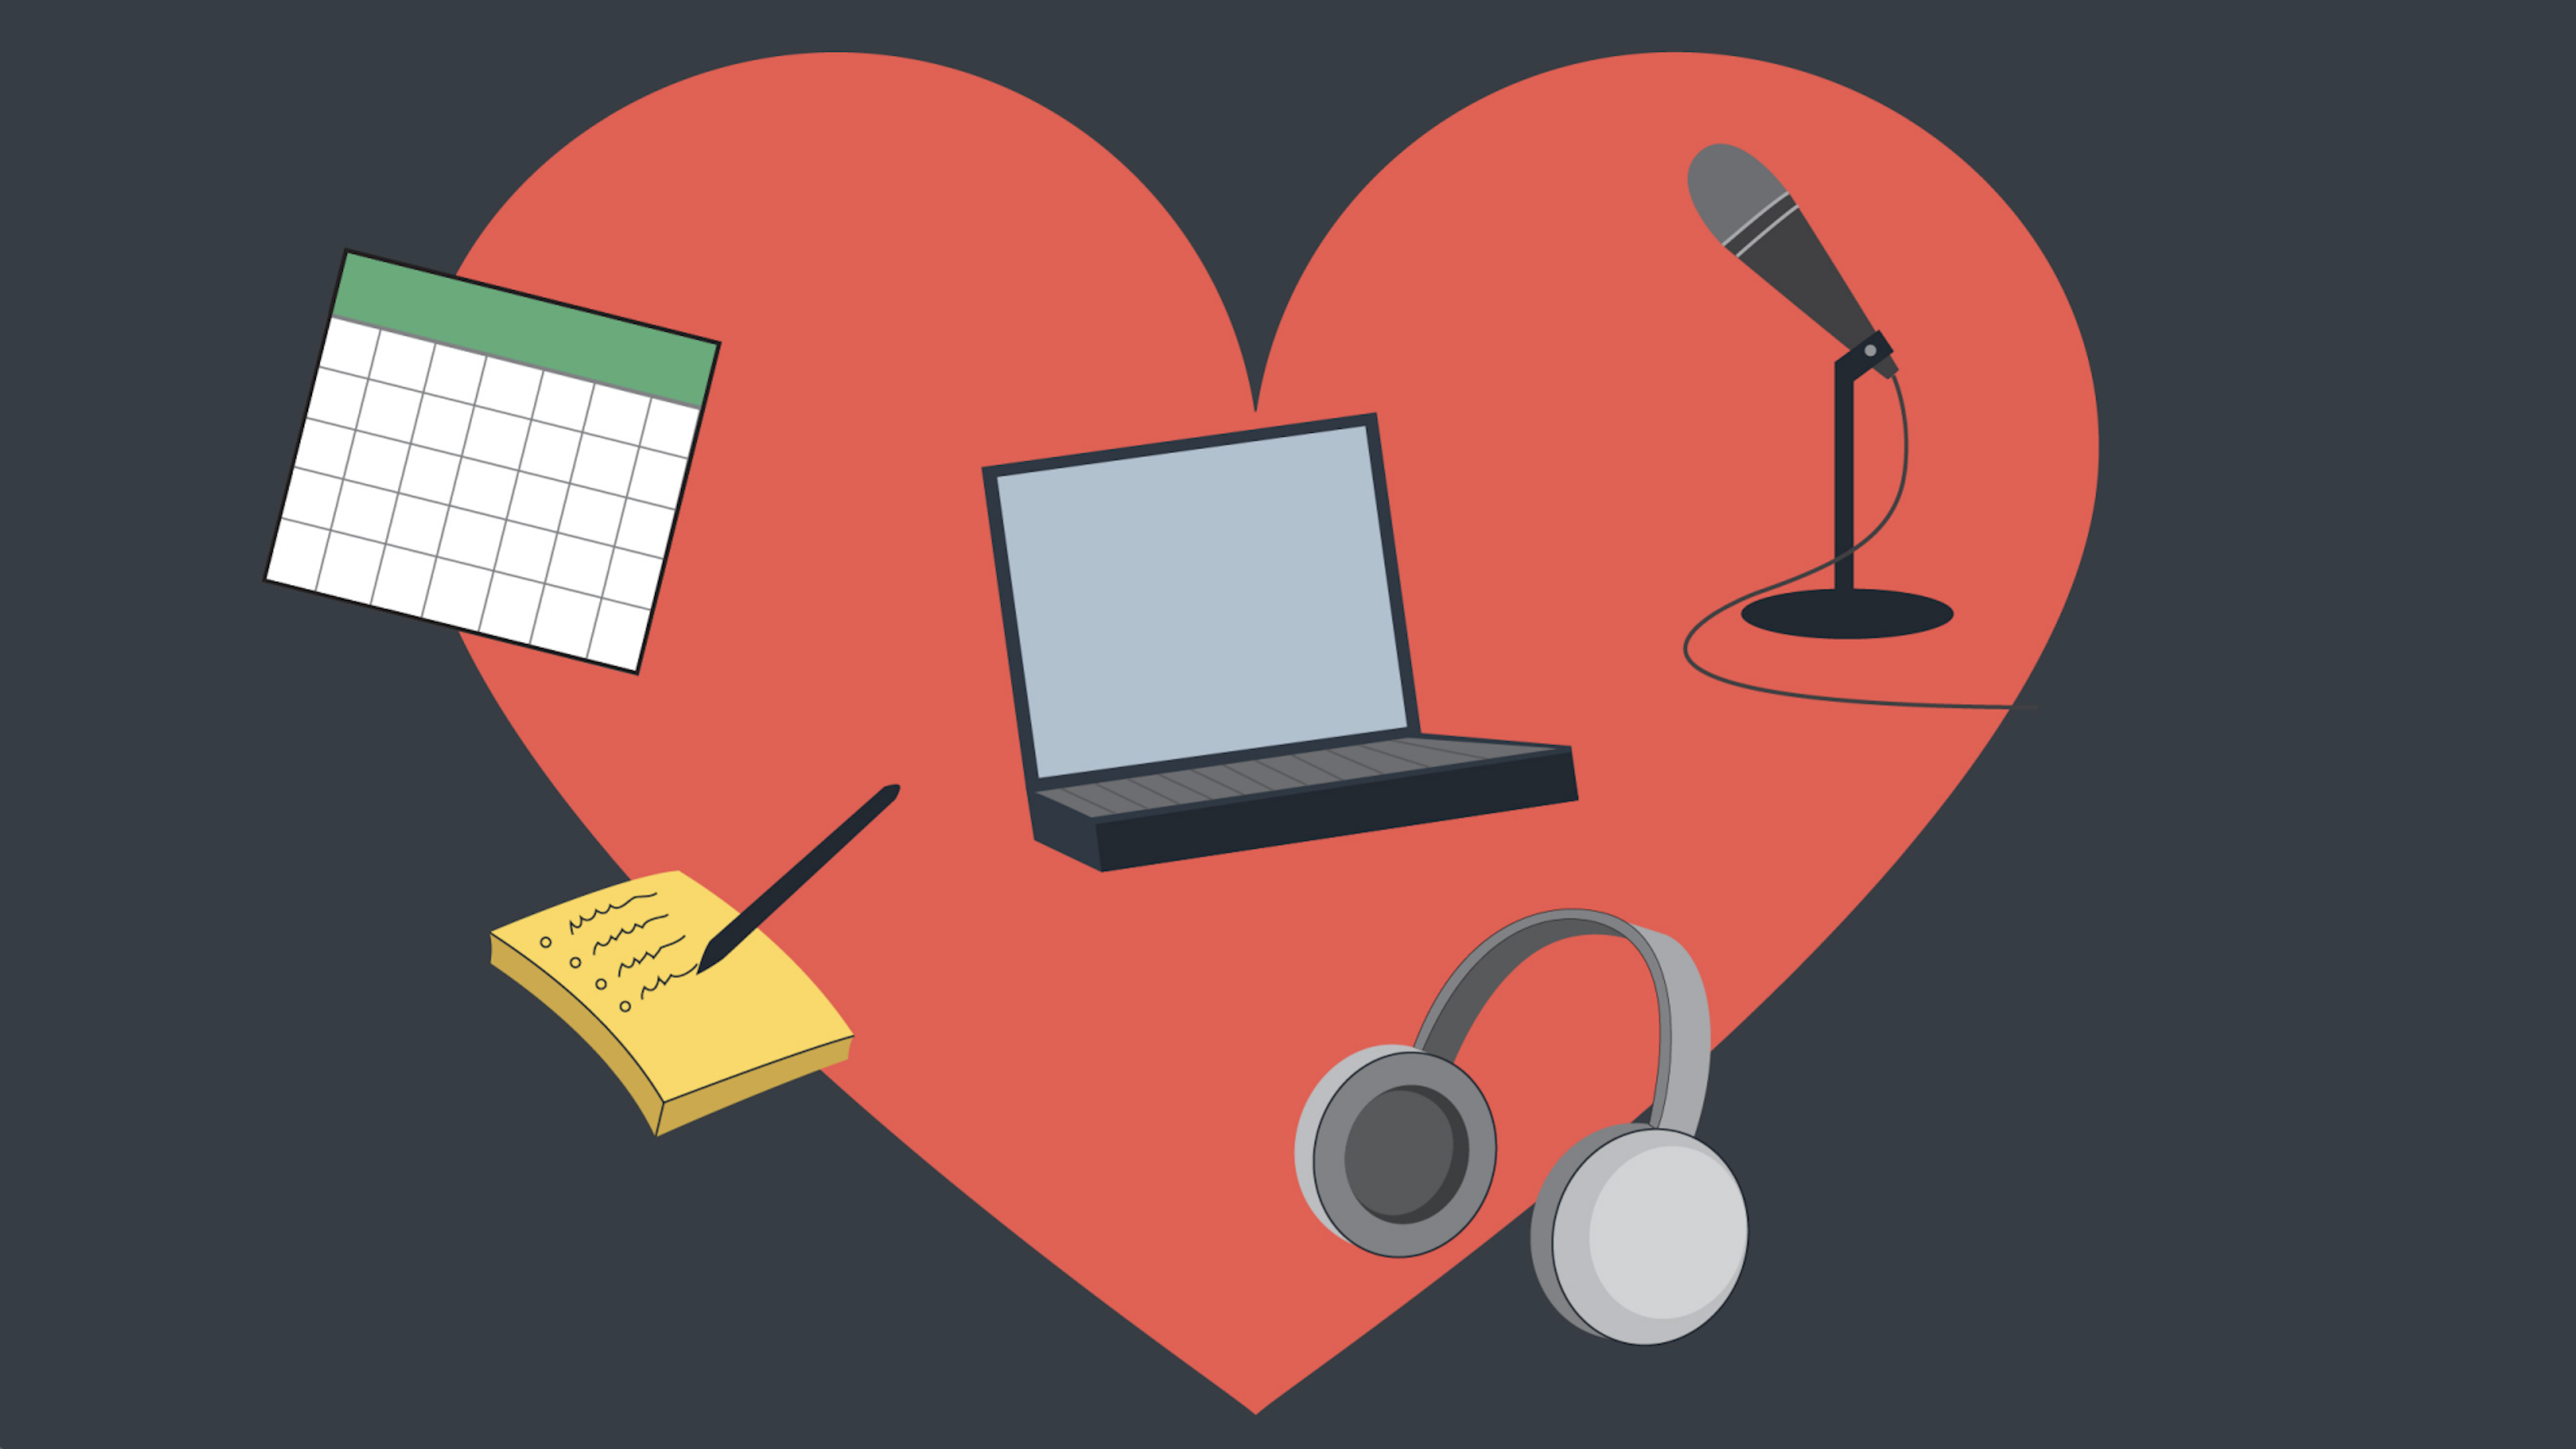 Illustration with a heart in the background that includes a computer, microphone and calendar